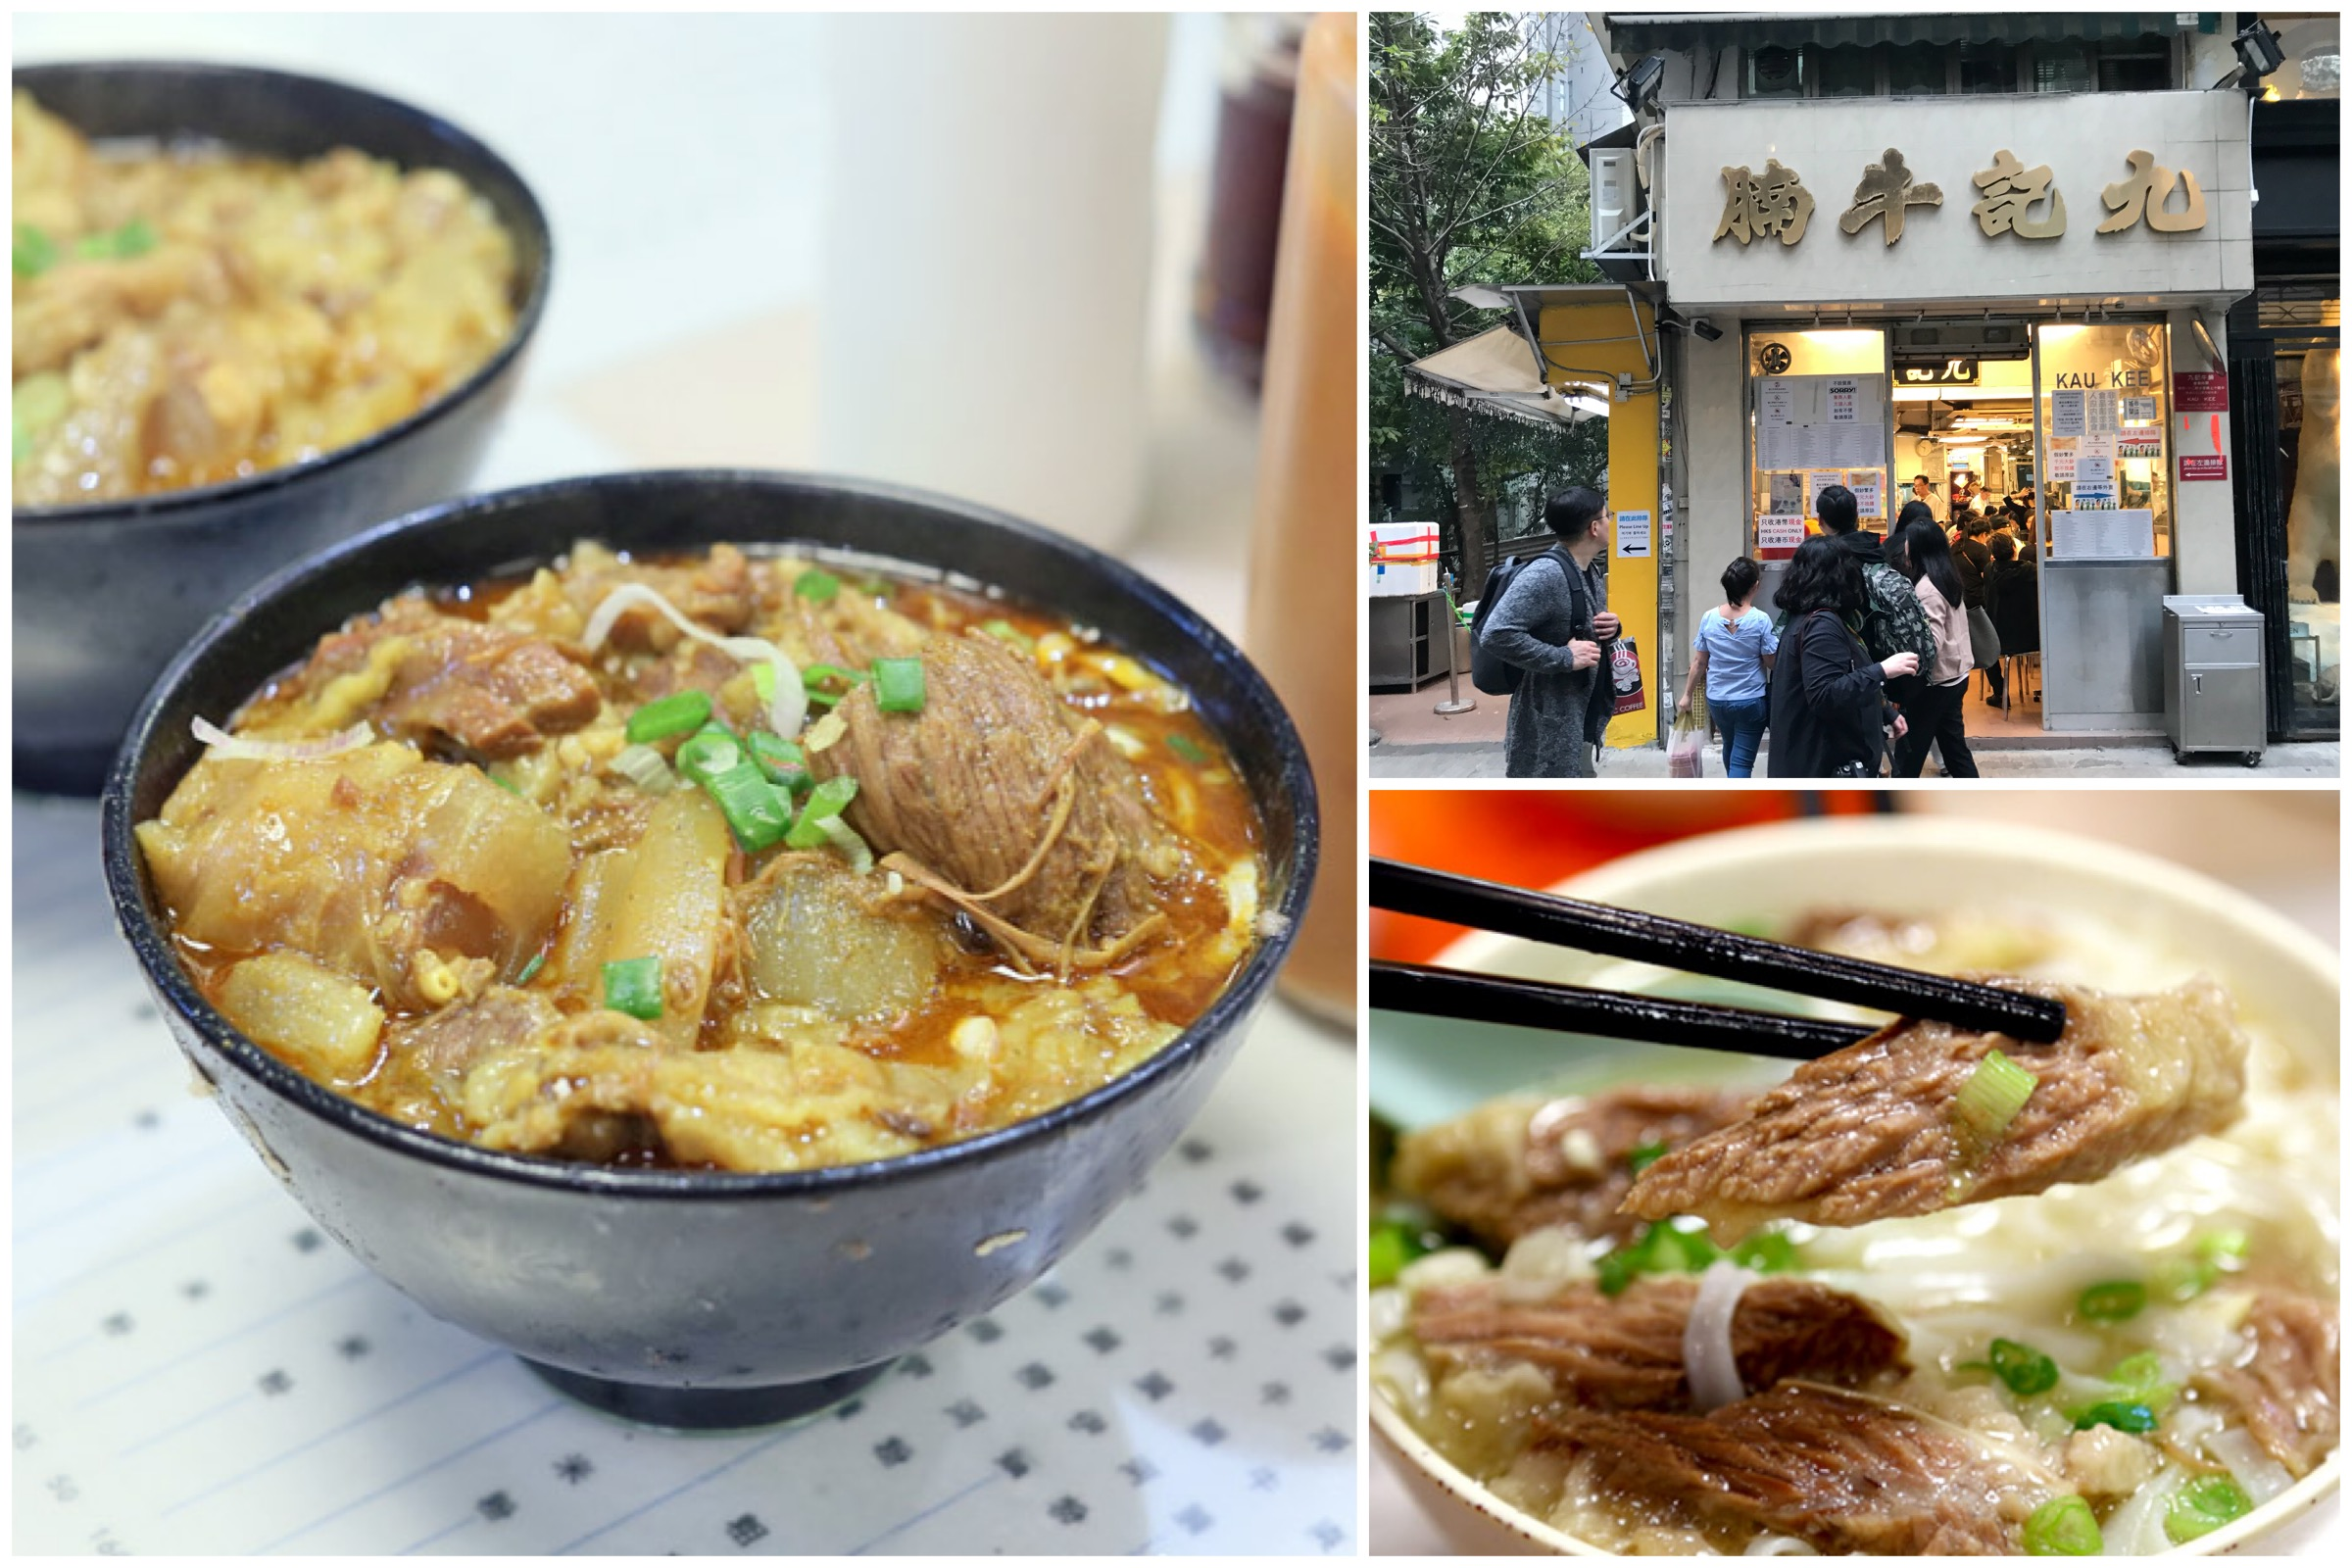 Kau Kee 九記牛腩 – Popular Beef Brisket Noodles Institution, At Hong Kong Central